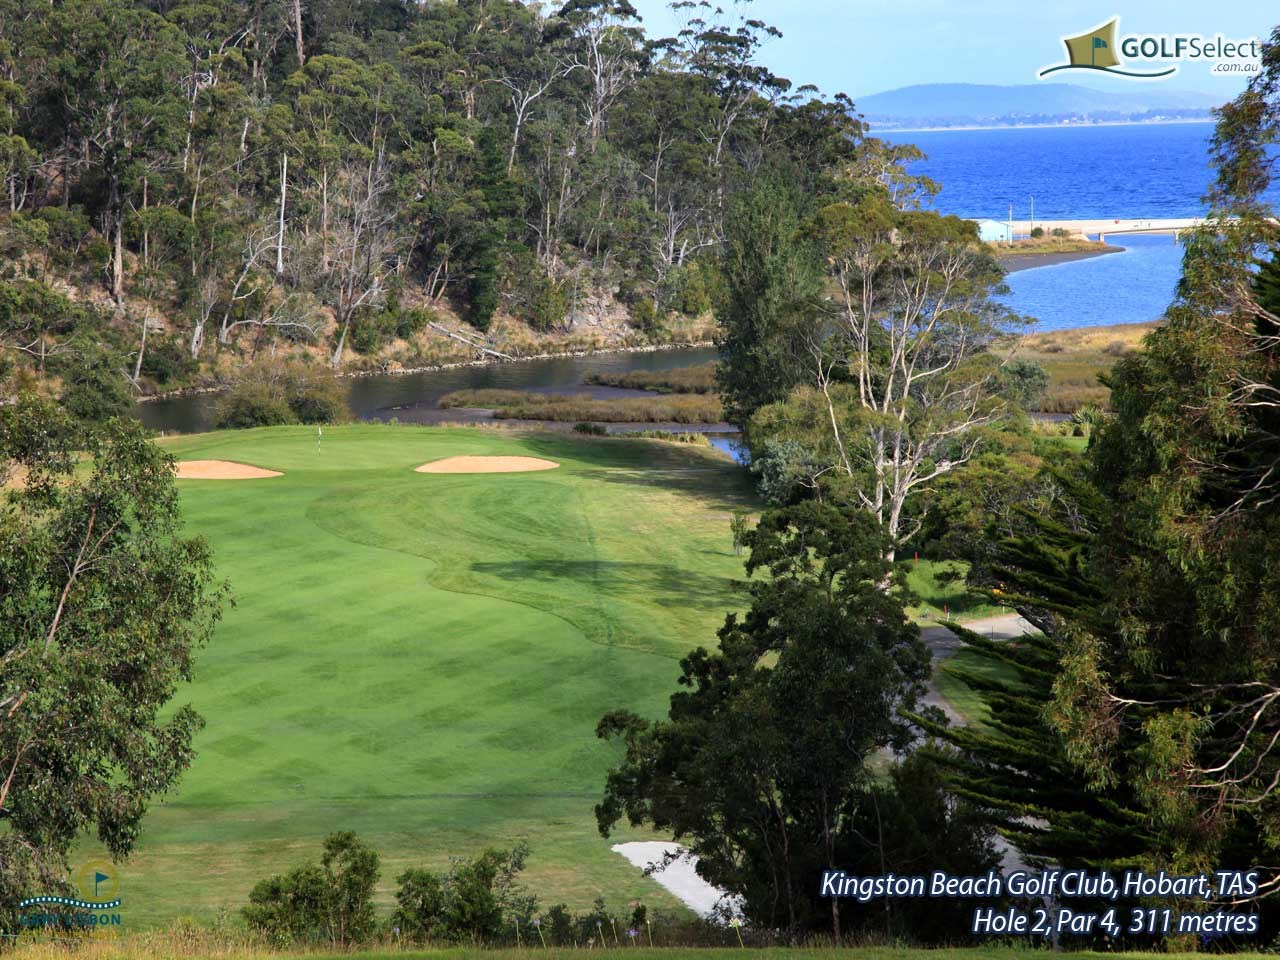 Kingston Beach Golf Club Hole 2, Par 4, 311 metres